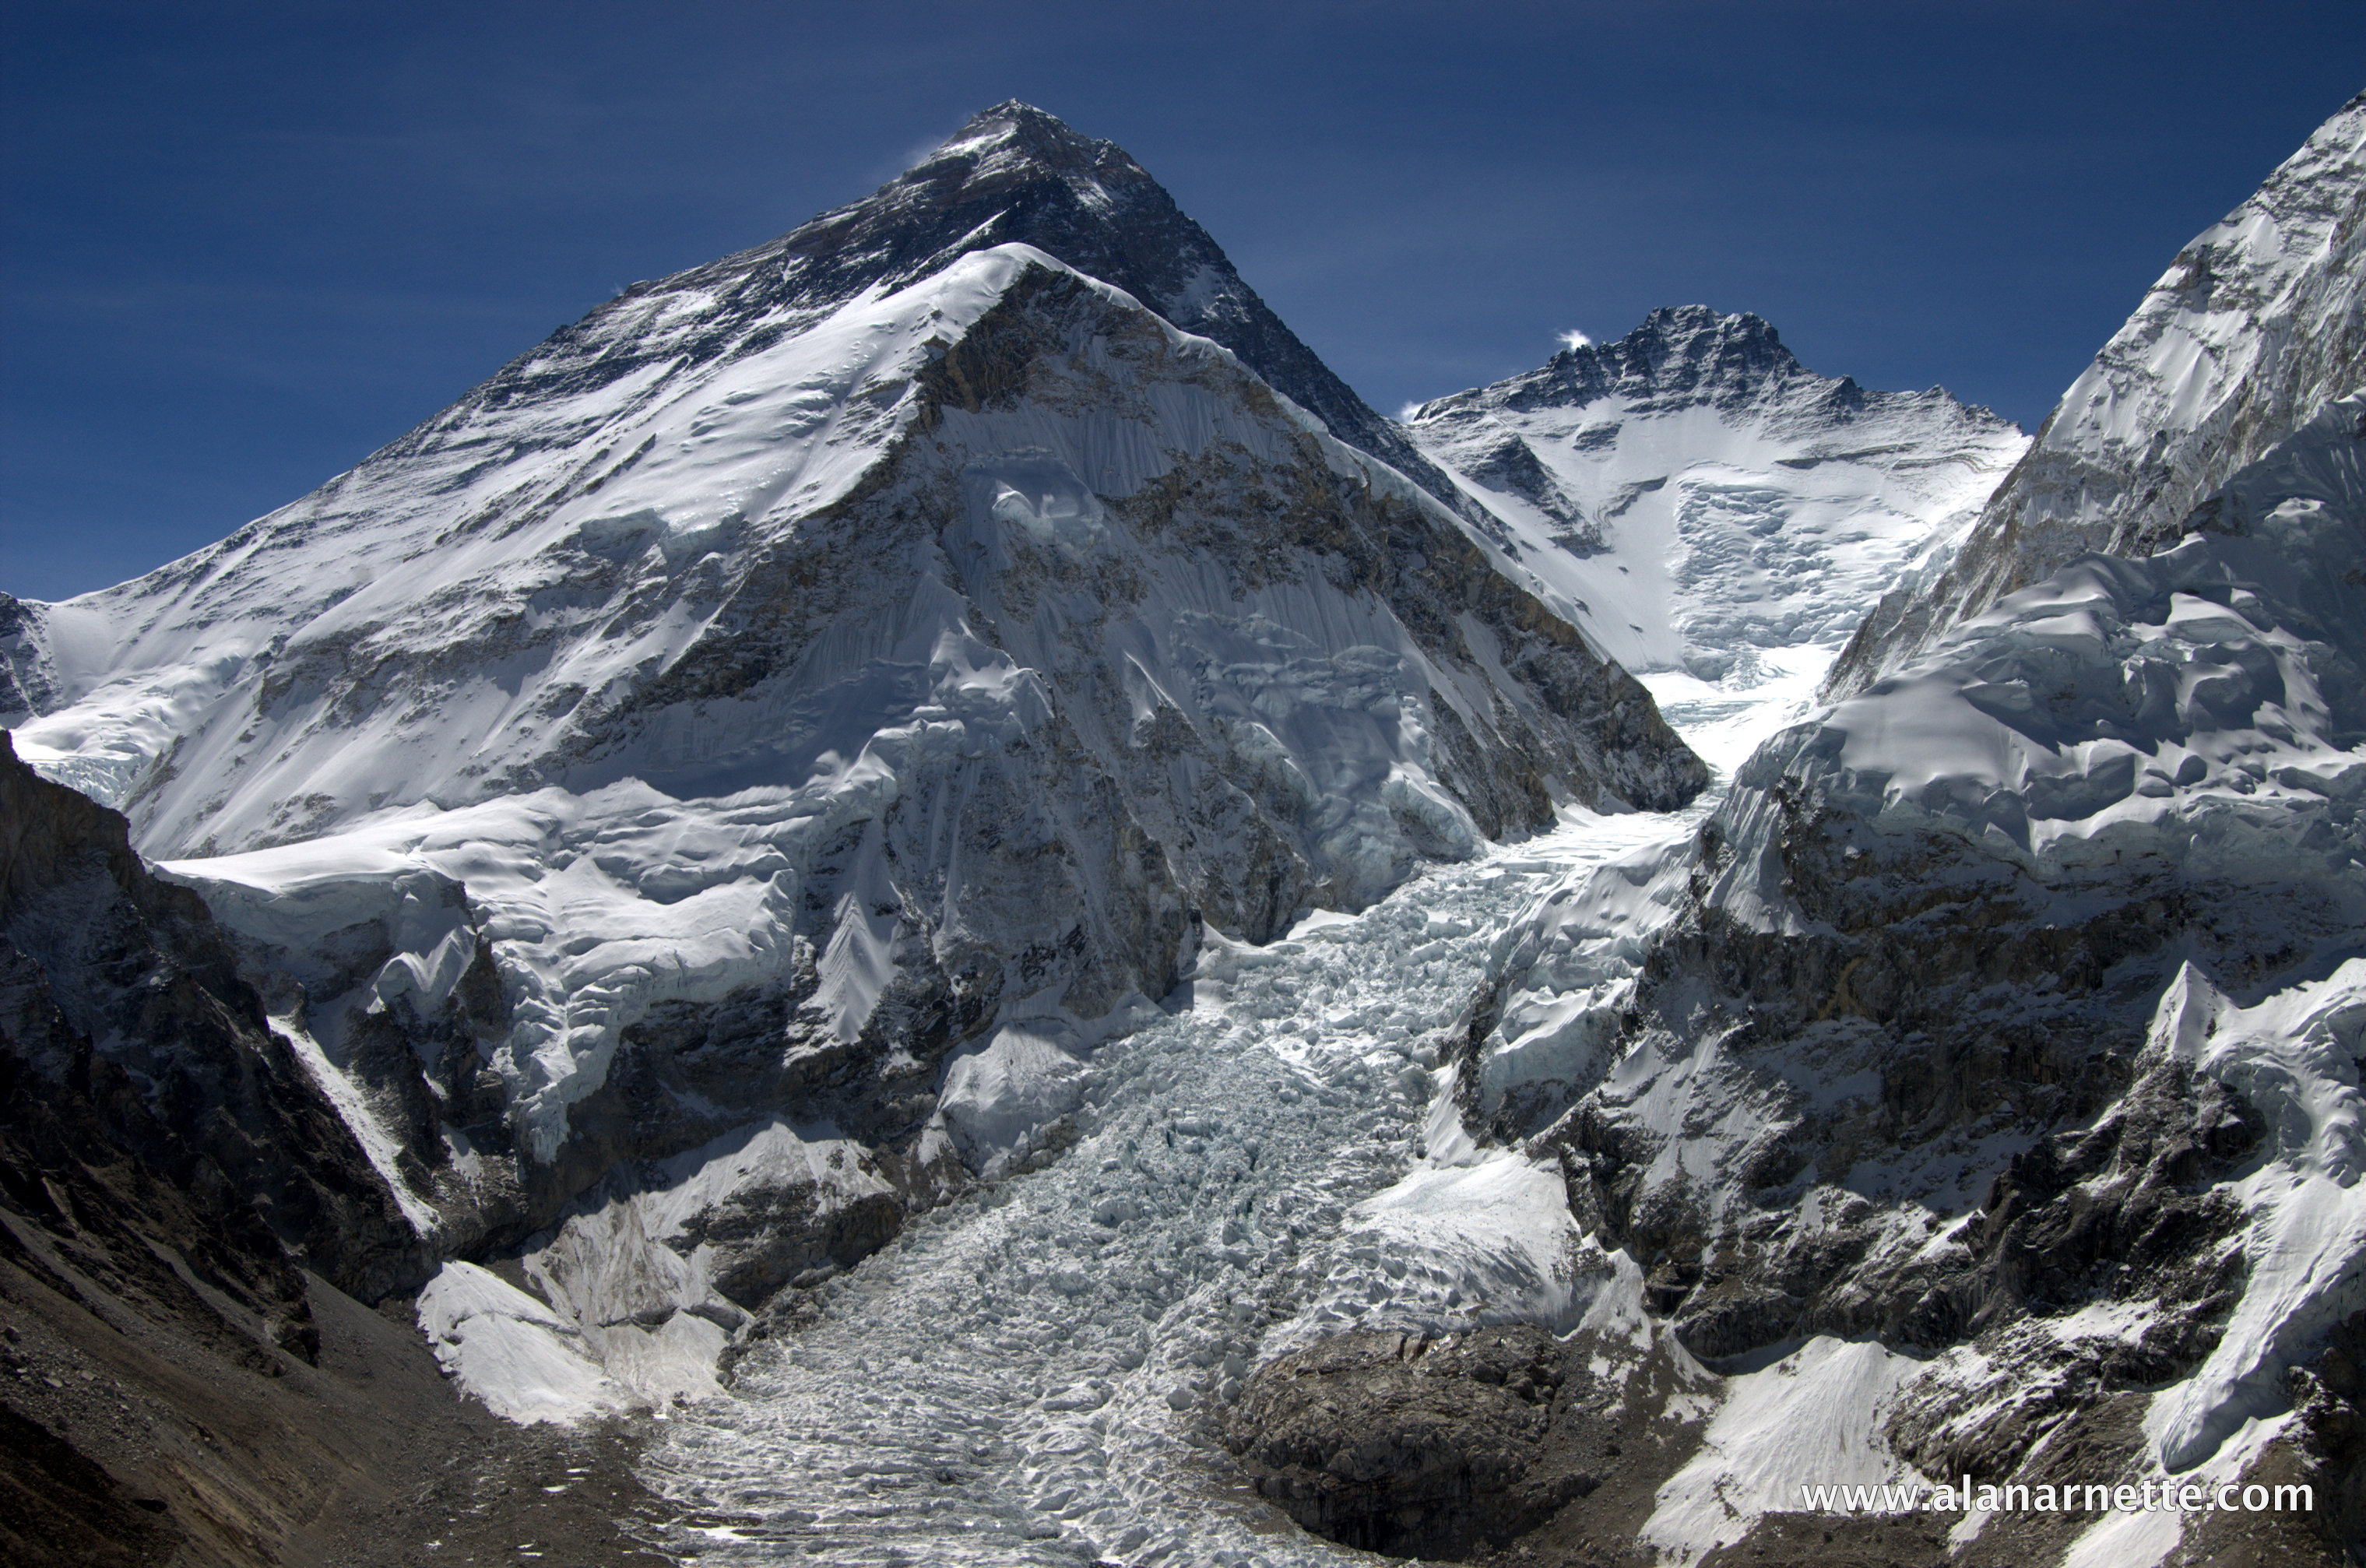 How Much Does it Cost to Climb Mount Everest? – 2019 Edition